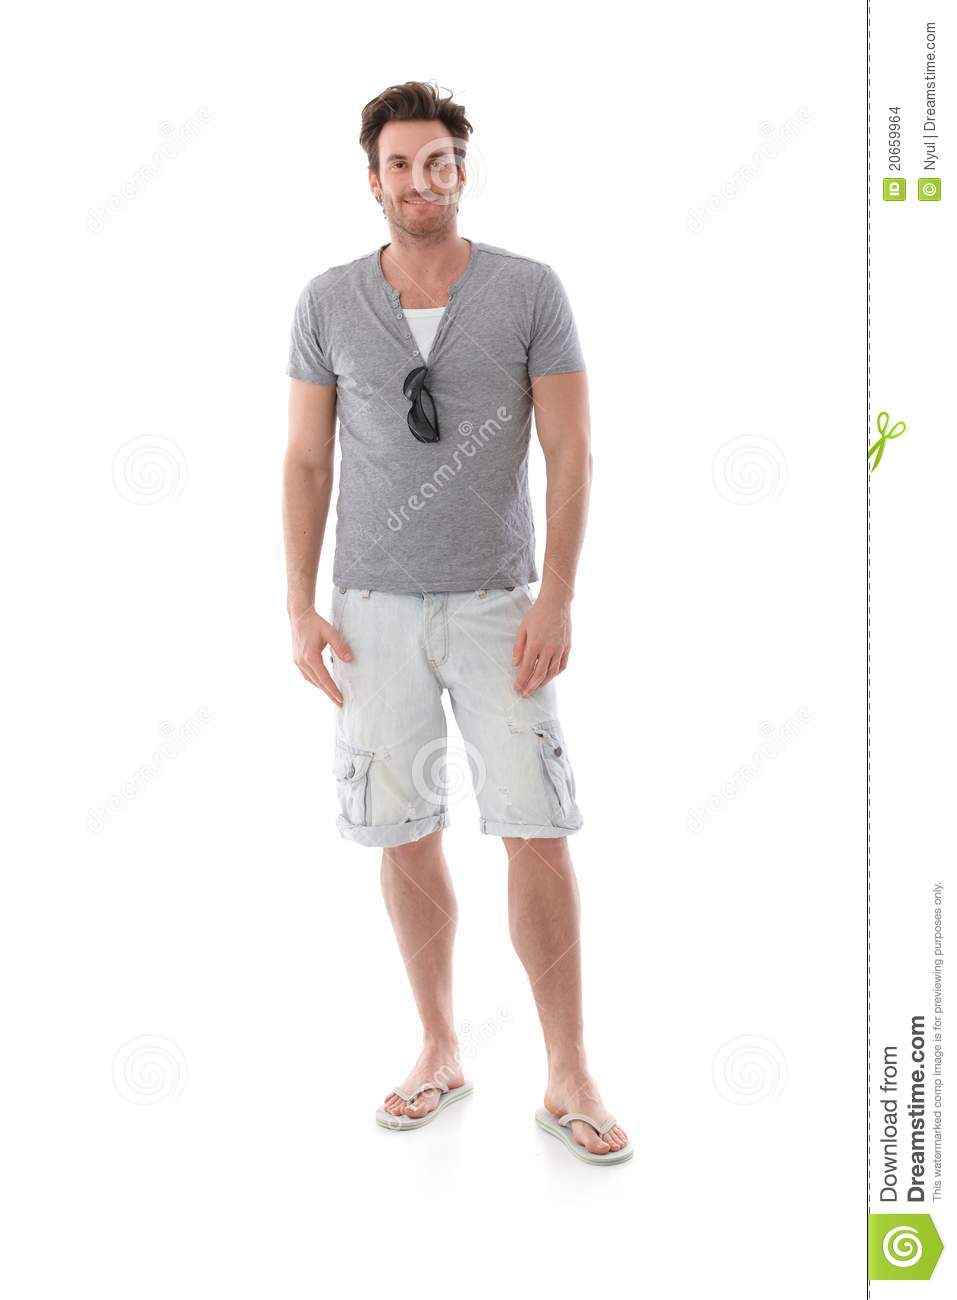 Download Goodlooking Man At Summertime Stock Photo - Image of cutout, confident: 20659964